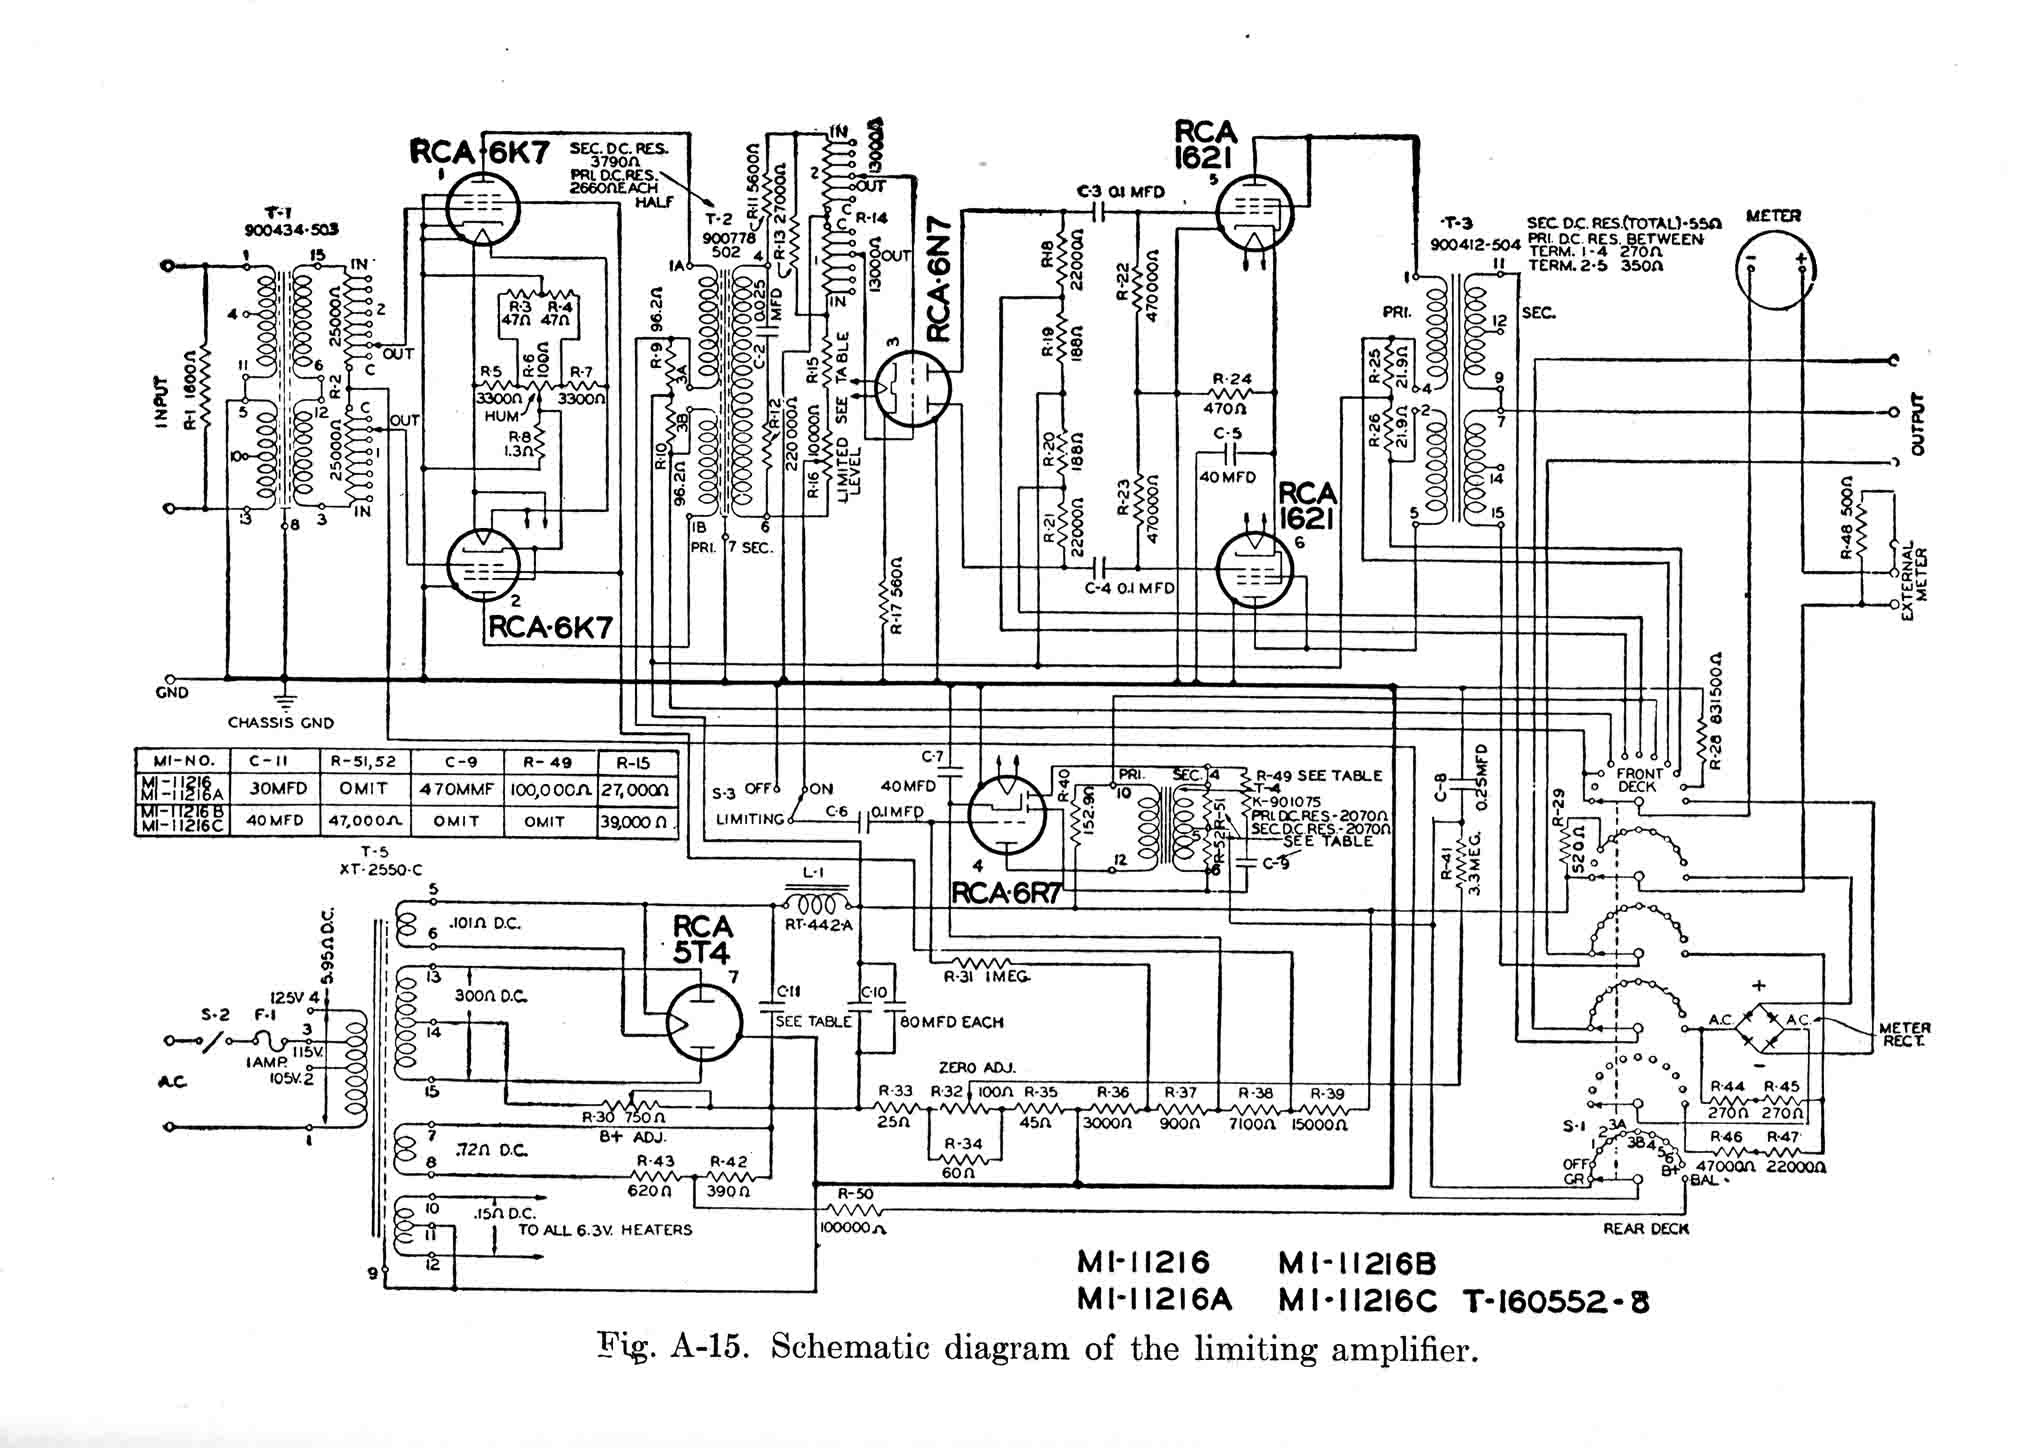 Vintage Microphones Wiring Diagrams Library Diagram Moreover 7 Pin Din Connector On Xlr Rca 86 Al Limiting Amplifier